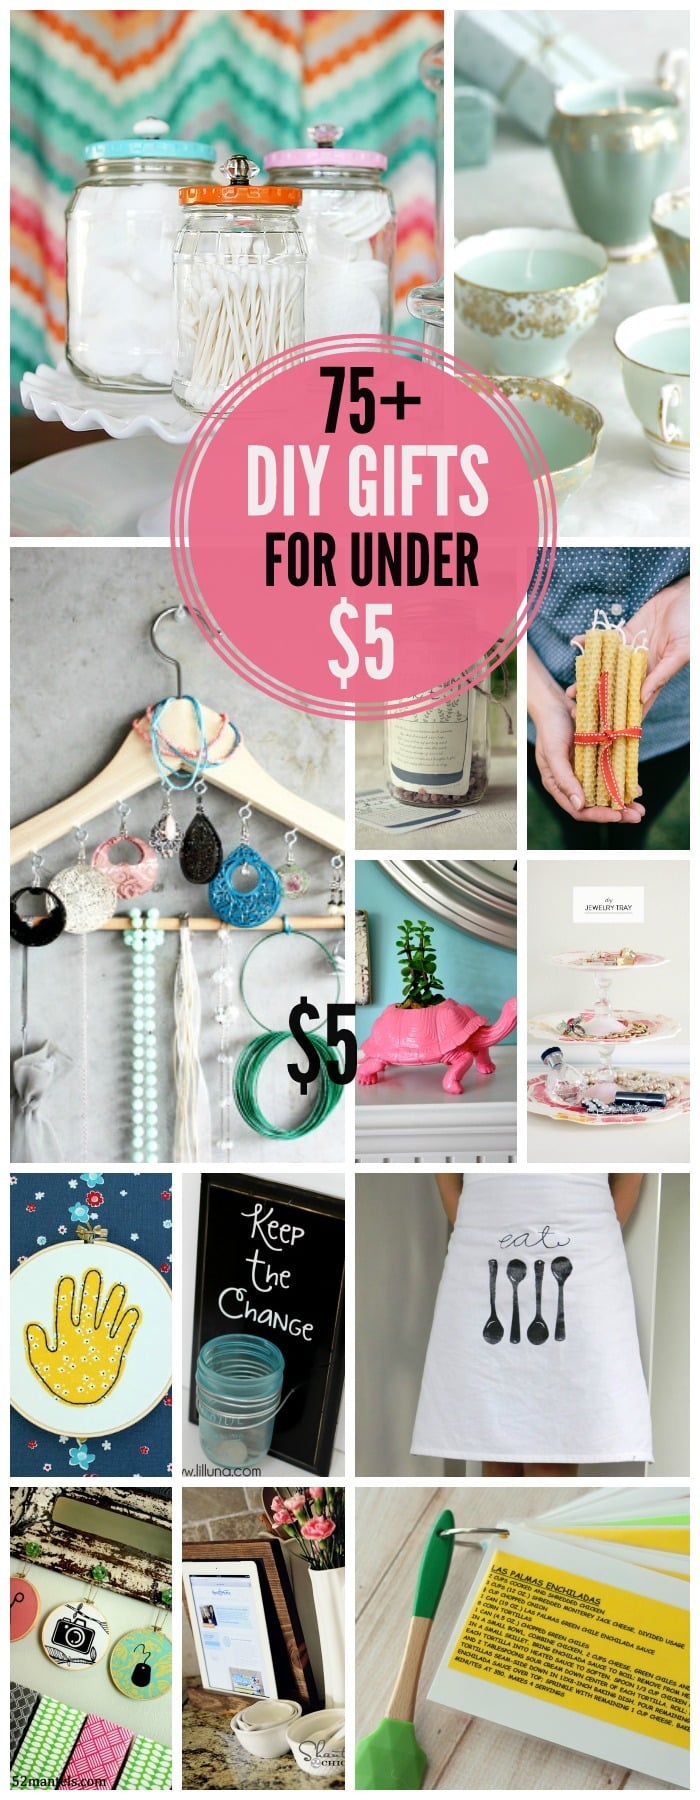 75+ Handmade Gifts for under $5! So many great gift ideas in one place!